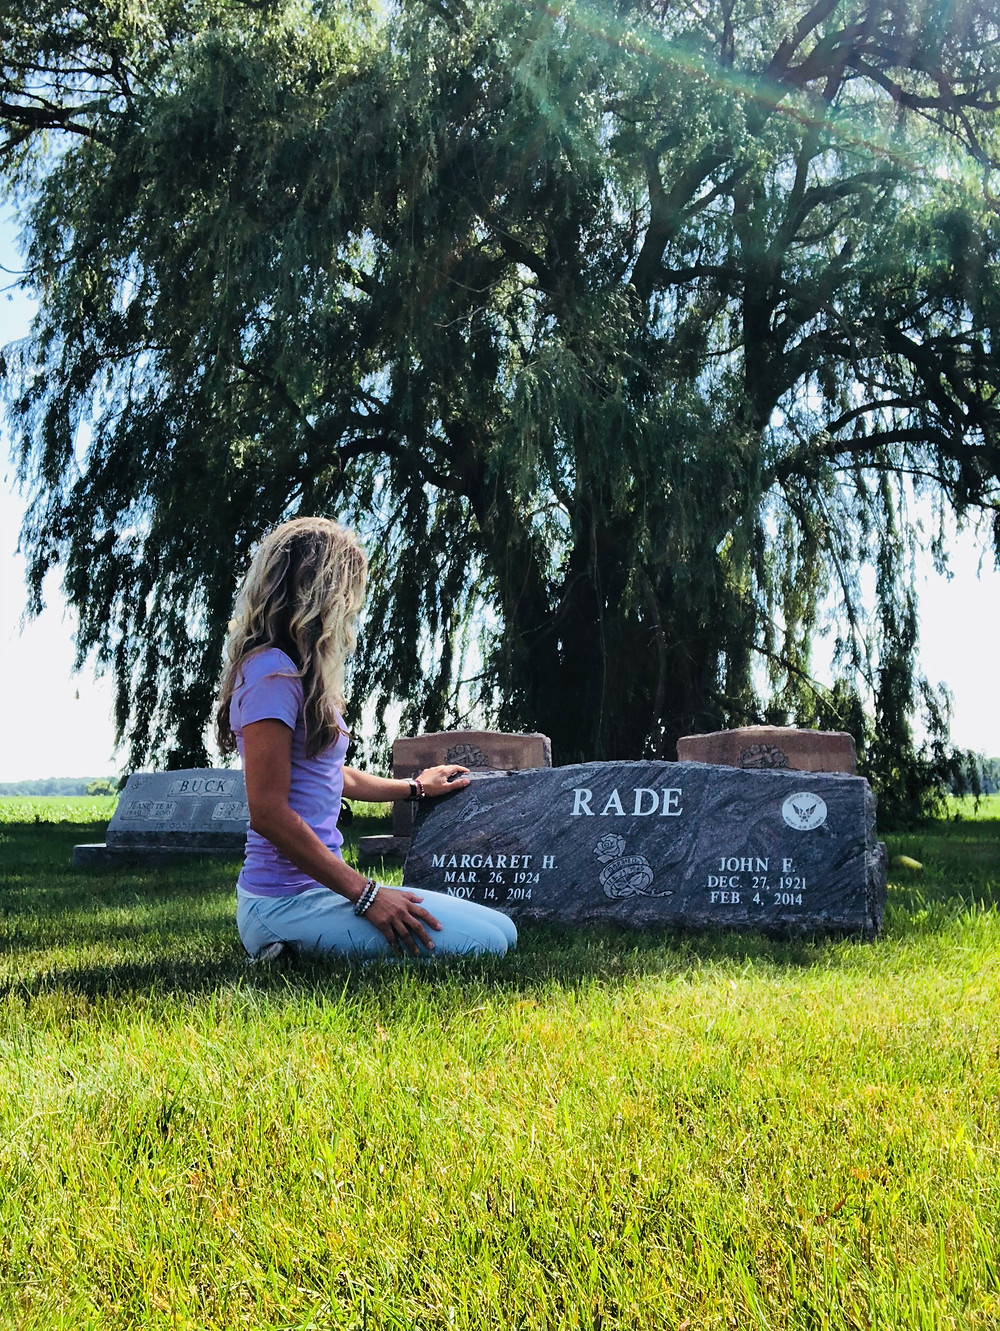 Shauna Gilsdorf visiting her grandparents at the cemetery